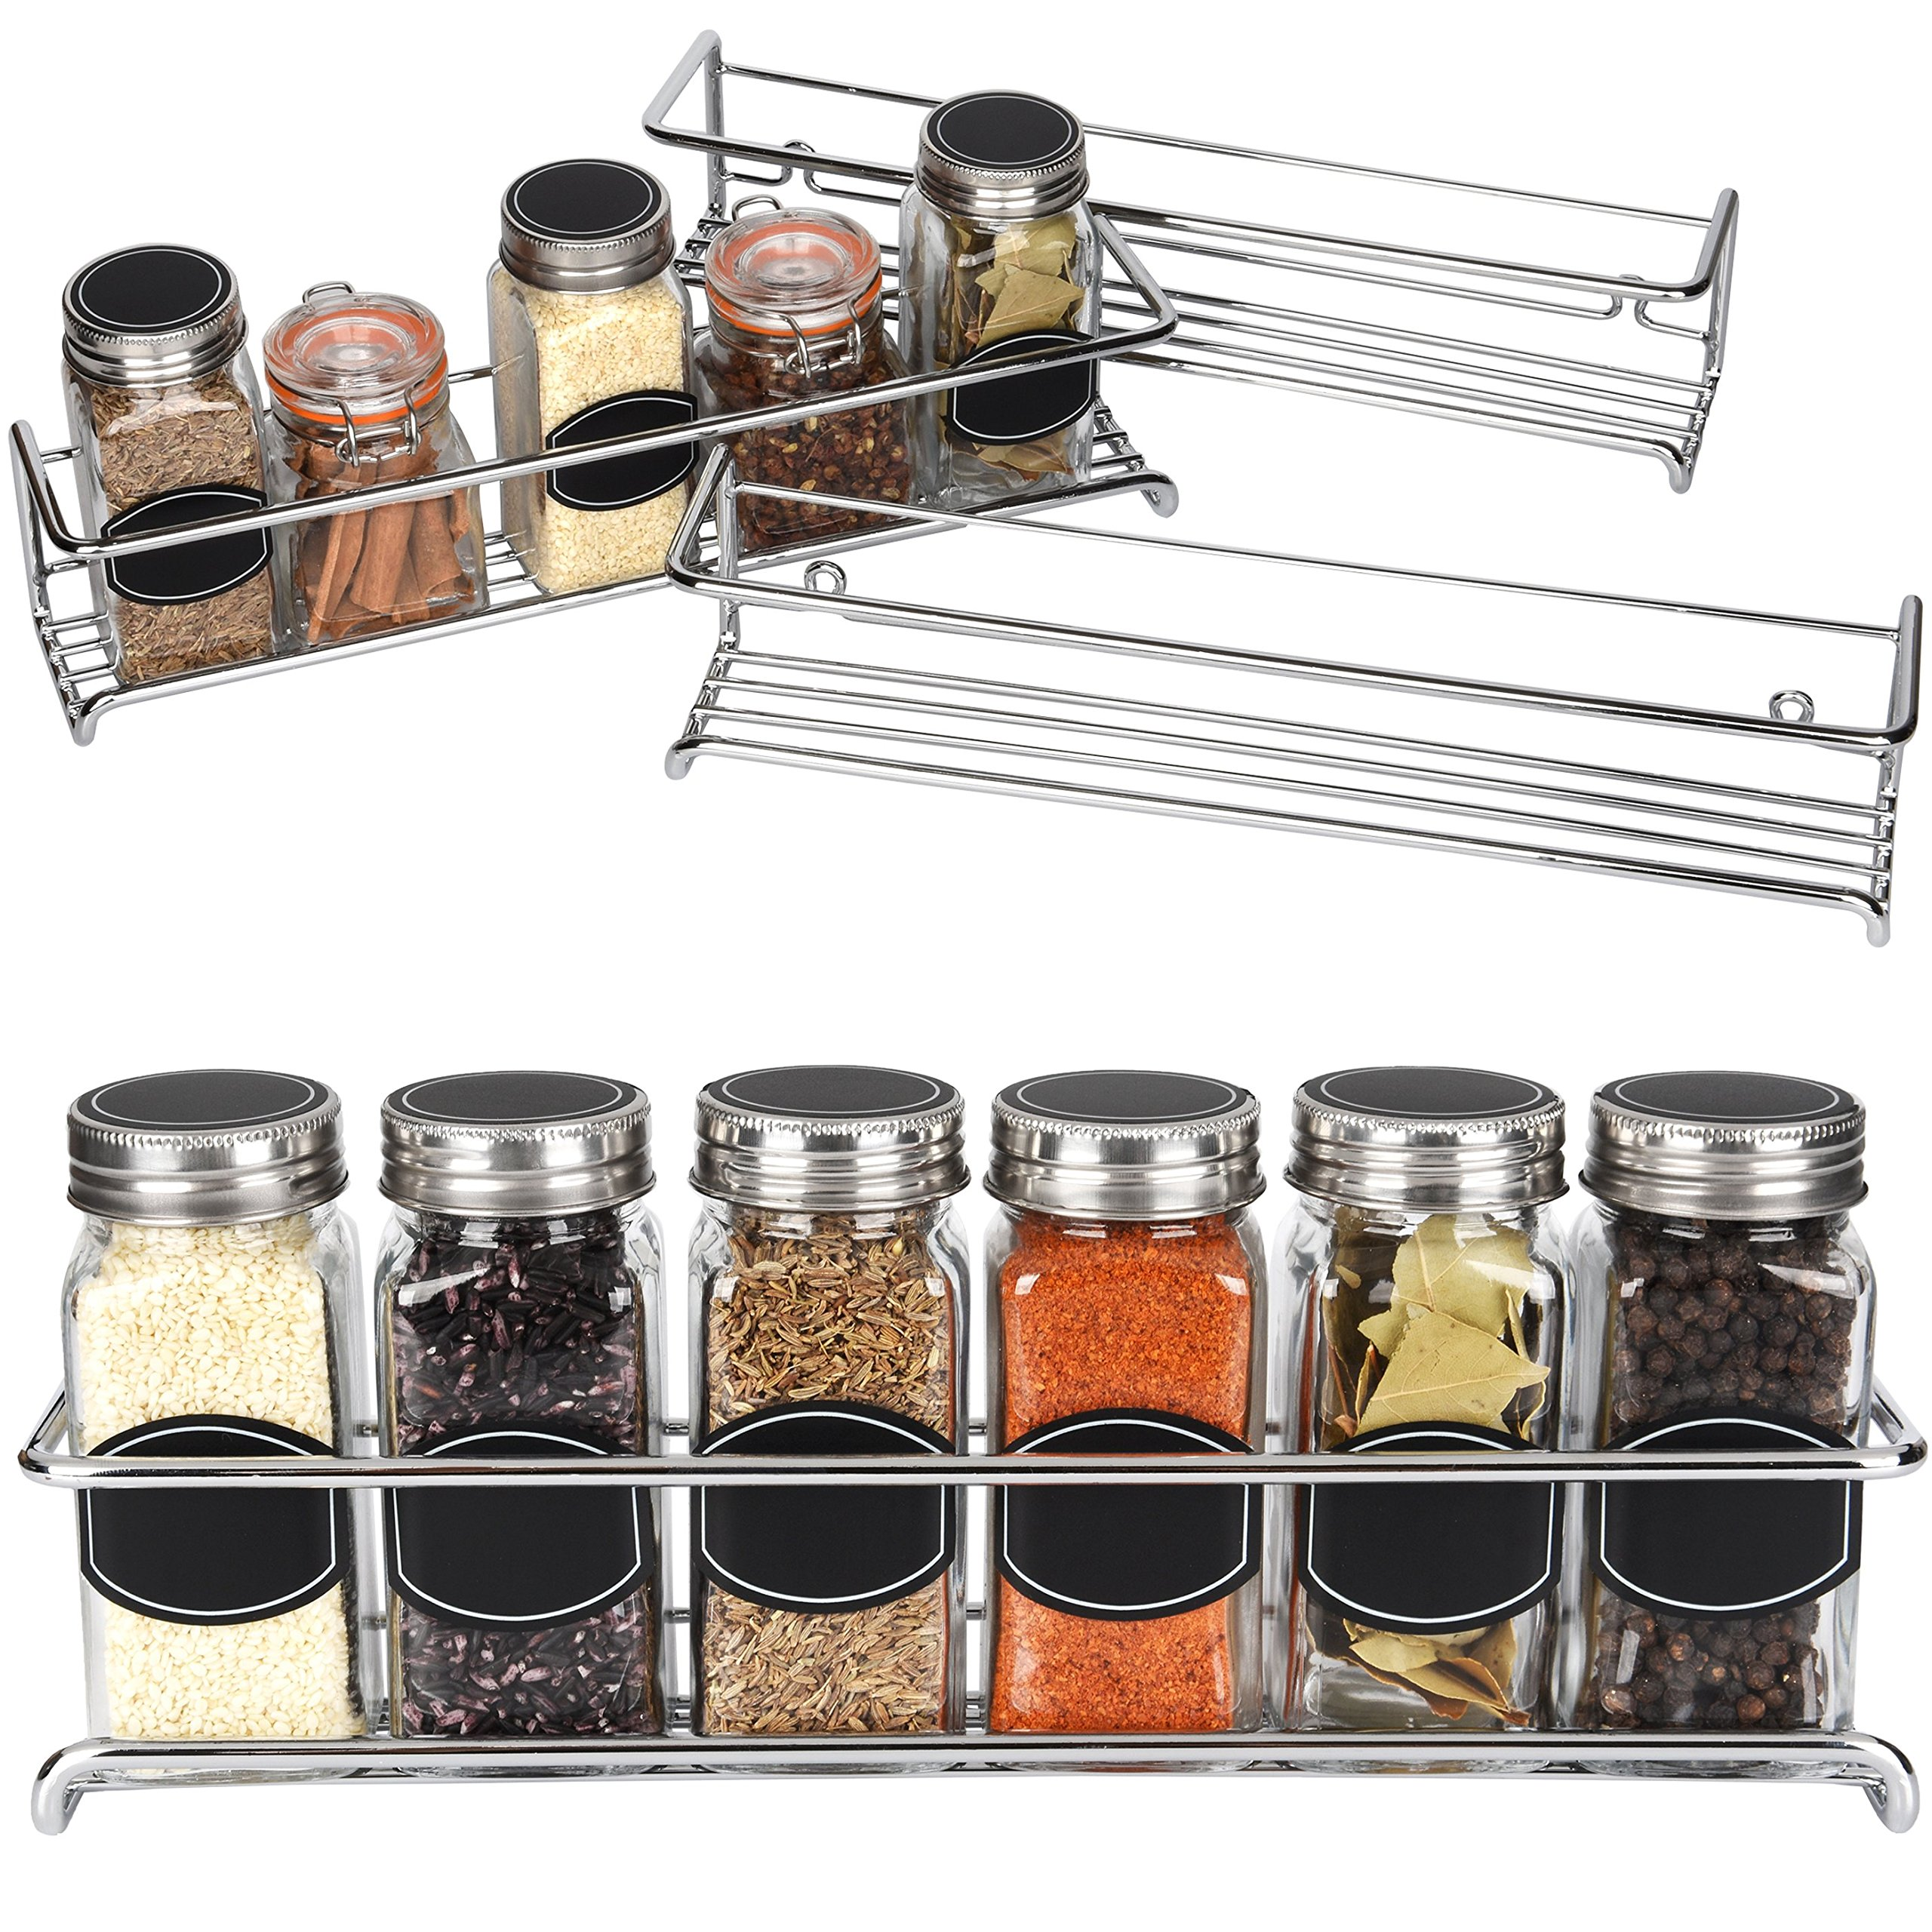 Spice Rack Organizer - Cabinet, Door, or Wall Mounted - Set of 4 Chrome Tiered Hanging Shelf - Holds 24 Spice Jars - Storage in Cupboard, Kitchen or Pantry - Display bottles on shelves, in cabinets